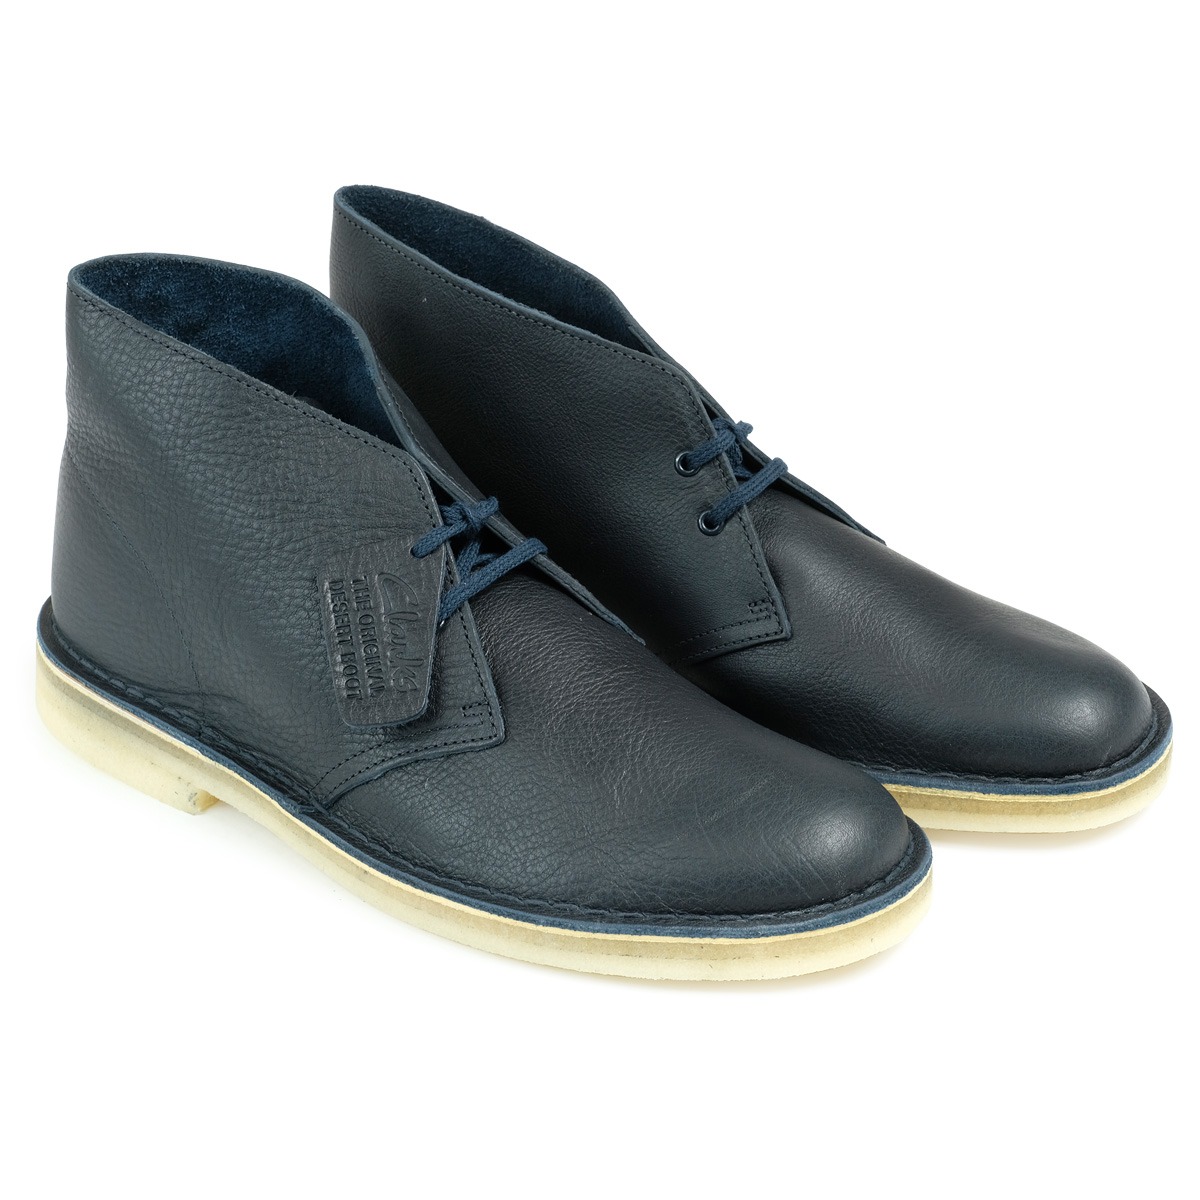 a81aa25f5e9 26125548 CLARKS DESERT BOOT kulaki desert boots men leather shoes navy  [load planned Shinnyu load in reservation product 10/23 containing] [1710]